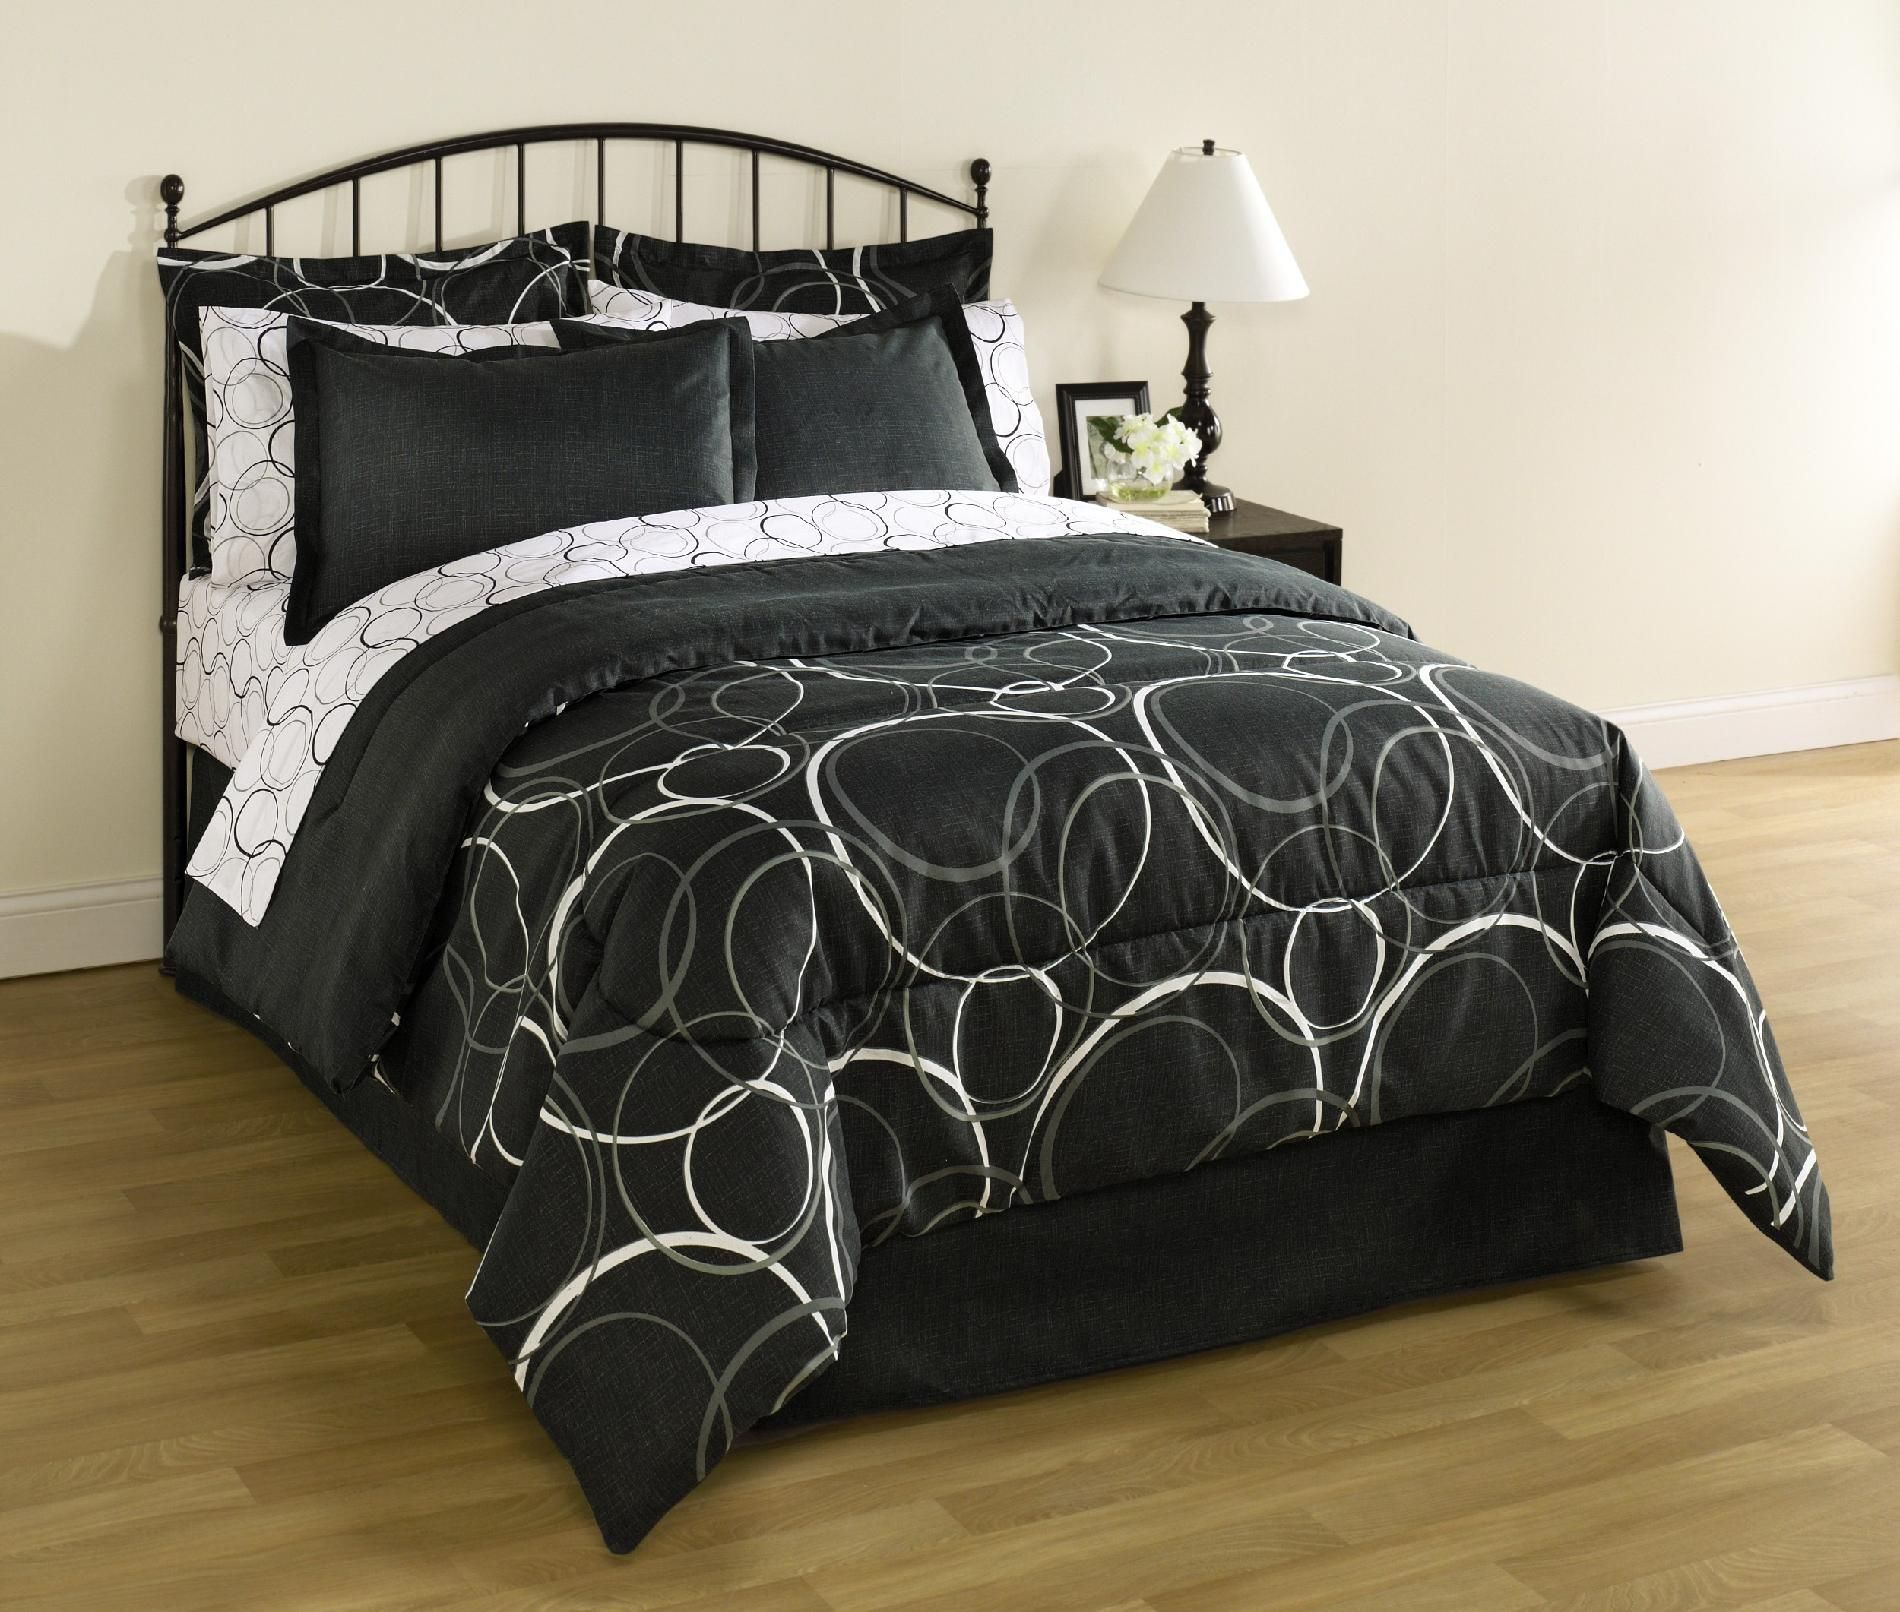 34 99 Twin Or Full Essential Home Complete Bed Sets Includes